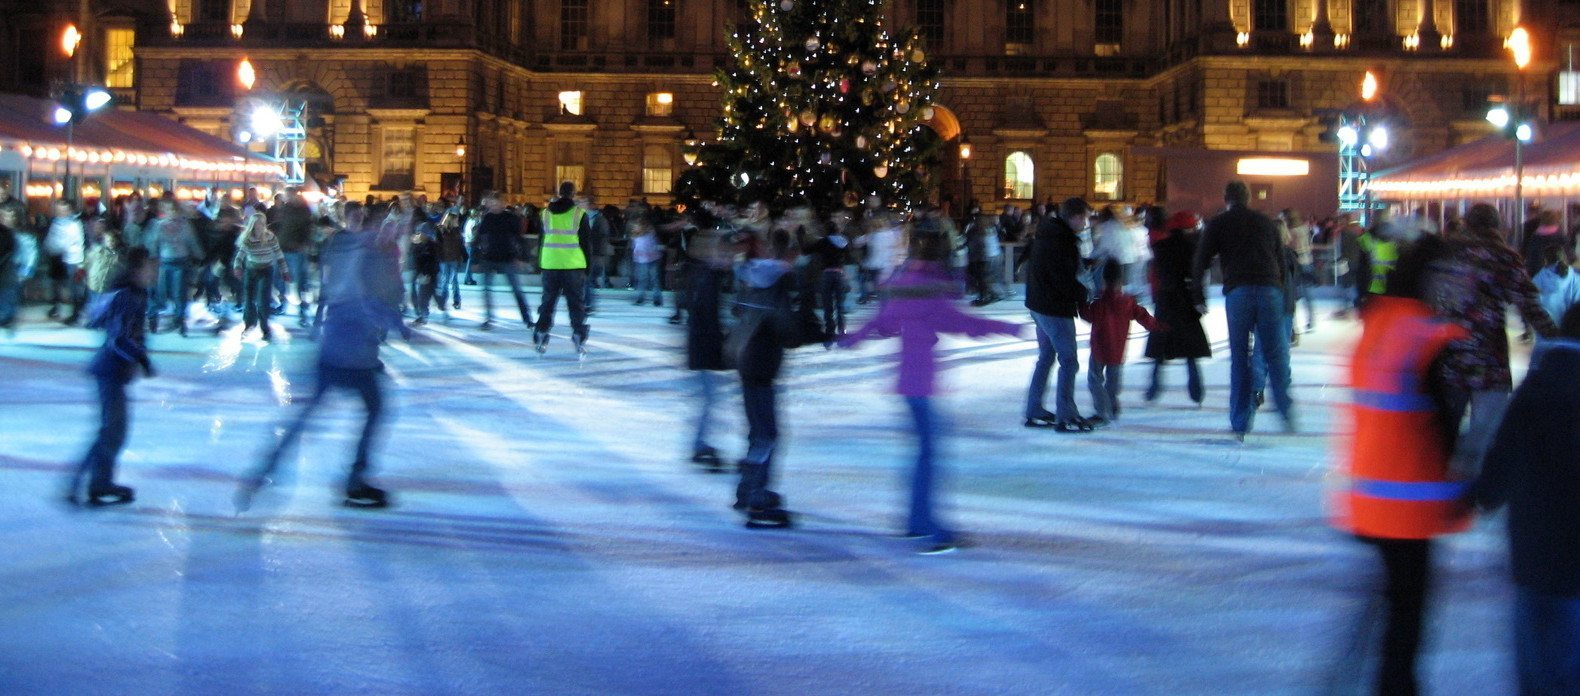 Christmas Ice Skating Rink Decoration.Free Ice Skating Rink Coming To Kenilworth The Boar